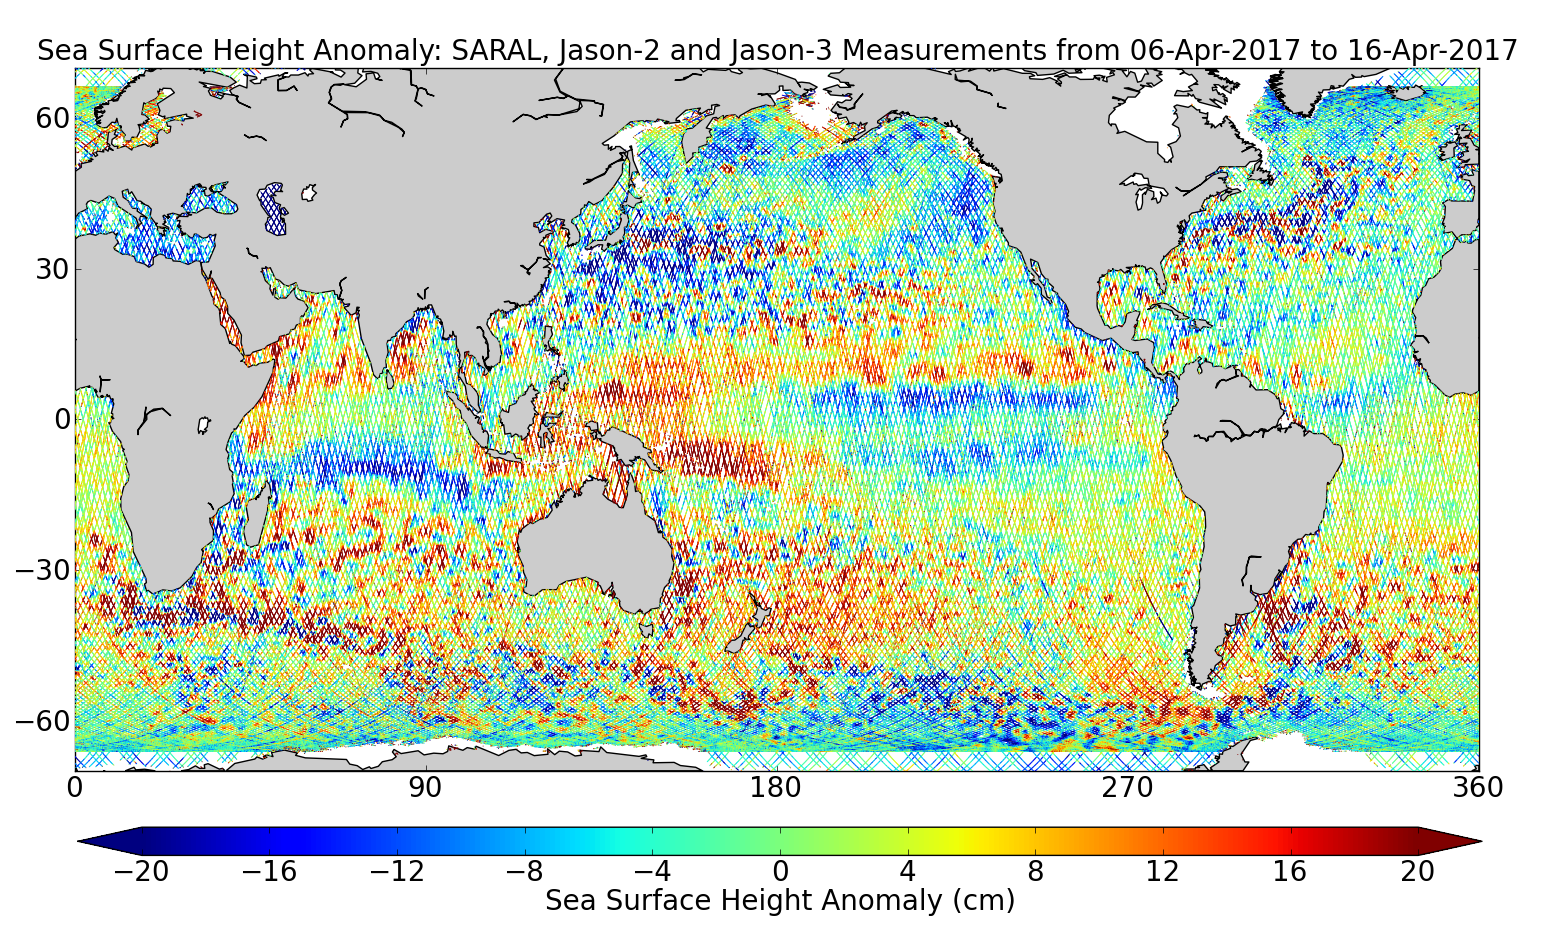 Sea Surface Height Anomaly: SARAL, Jason-2 and Jason-3 Measurements from 06-Apr-2017 to 16-Apr-2017